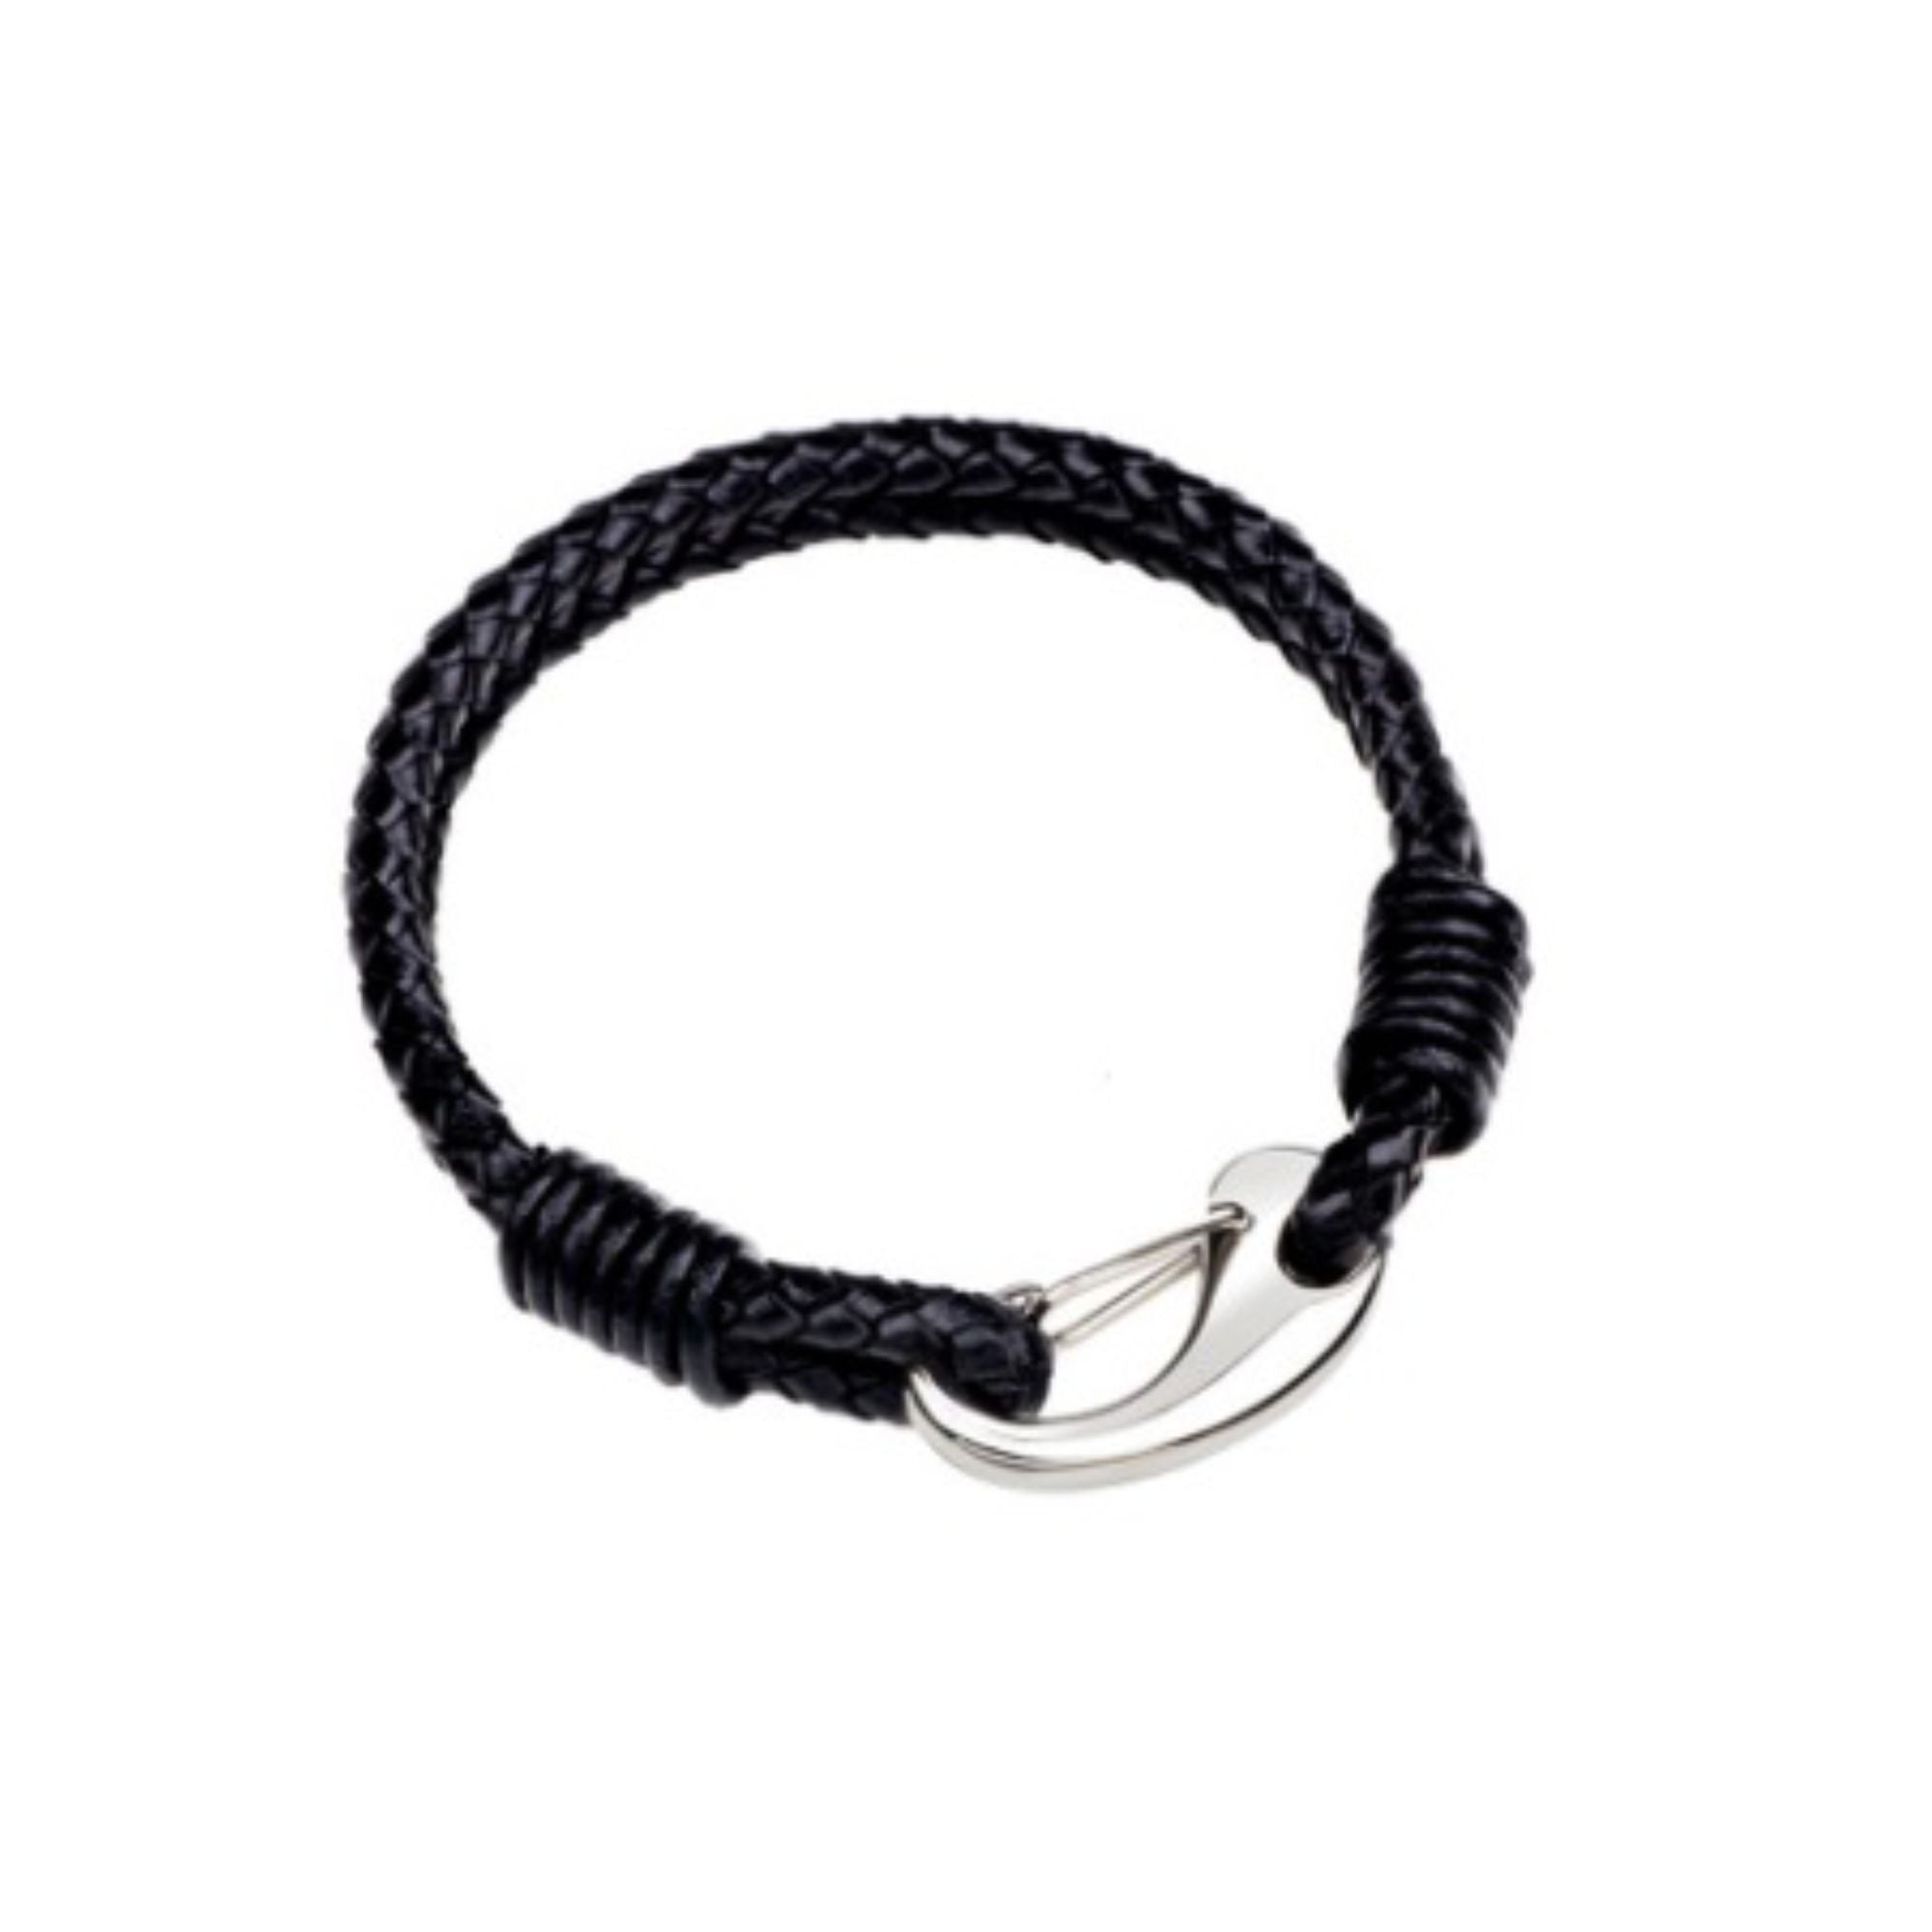 bracelets shop st bangle bracelet leather clasp img mariners bangles includes stainless mariner braided s black mens